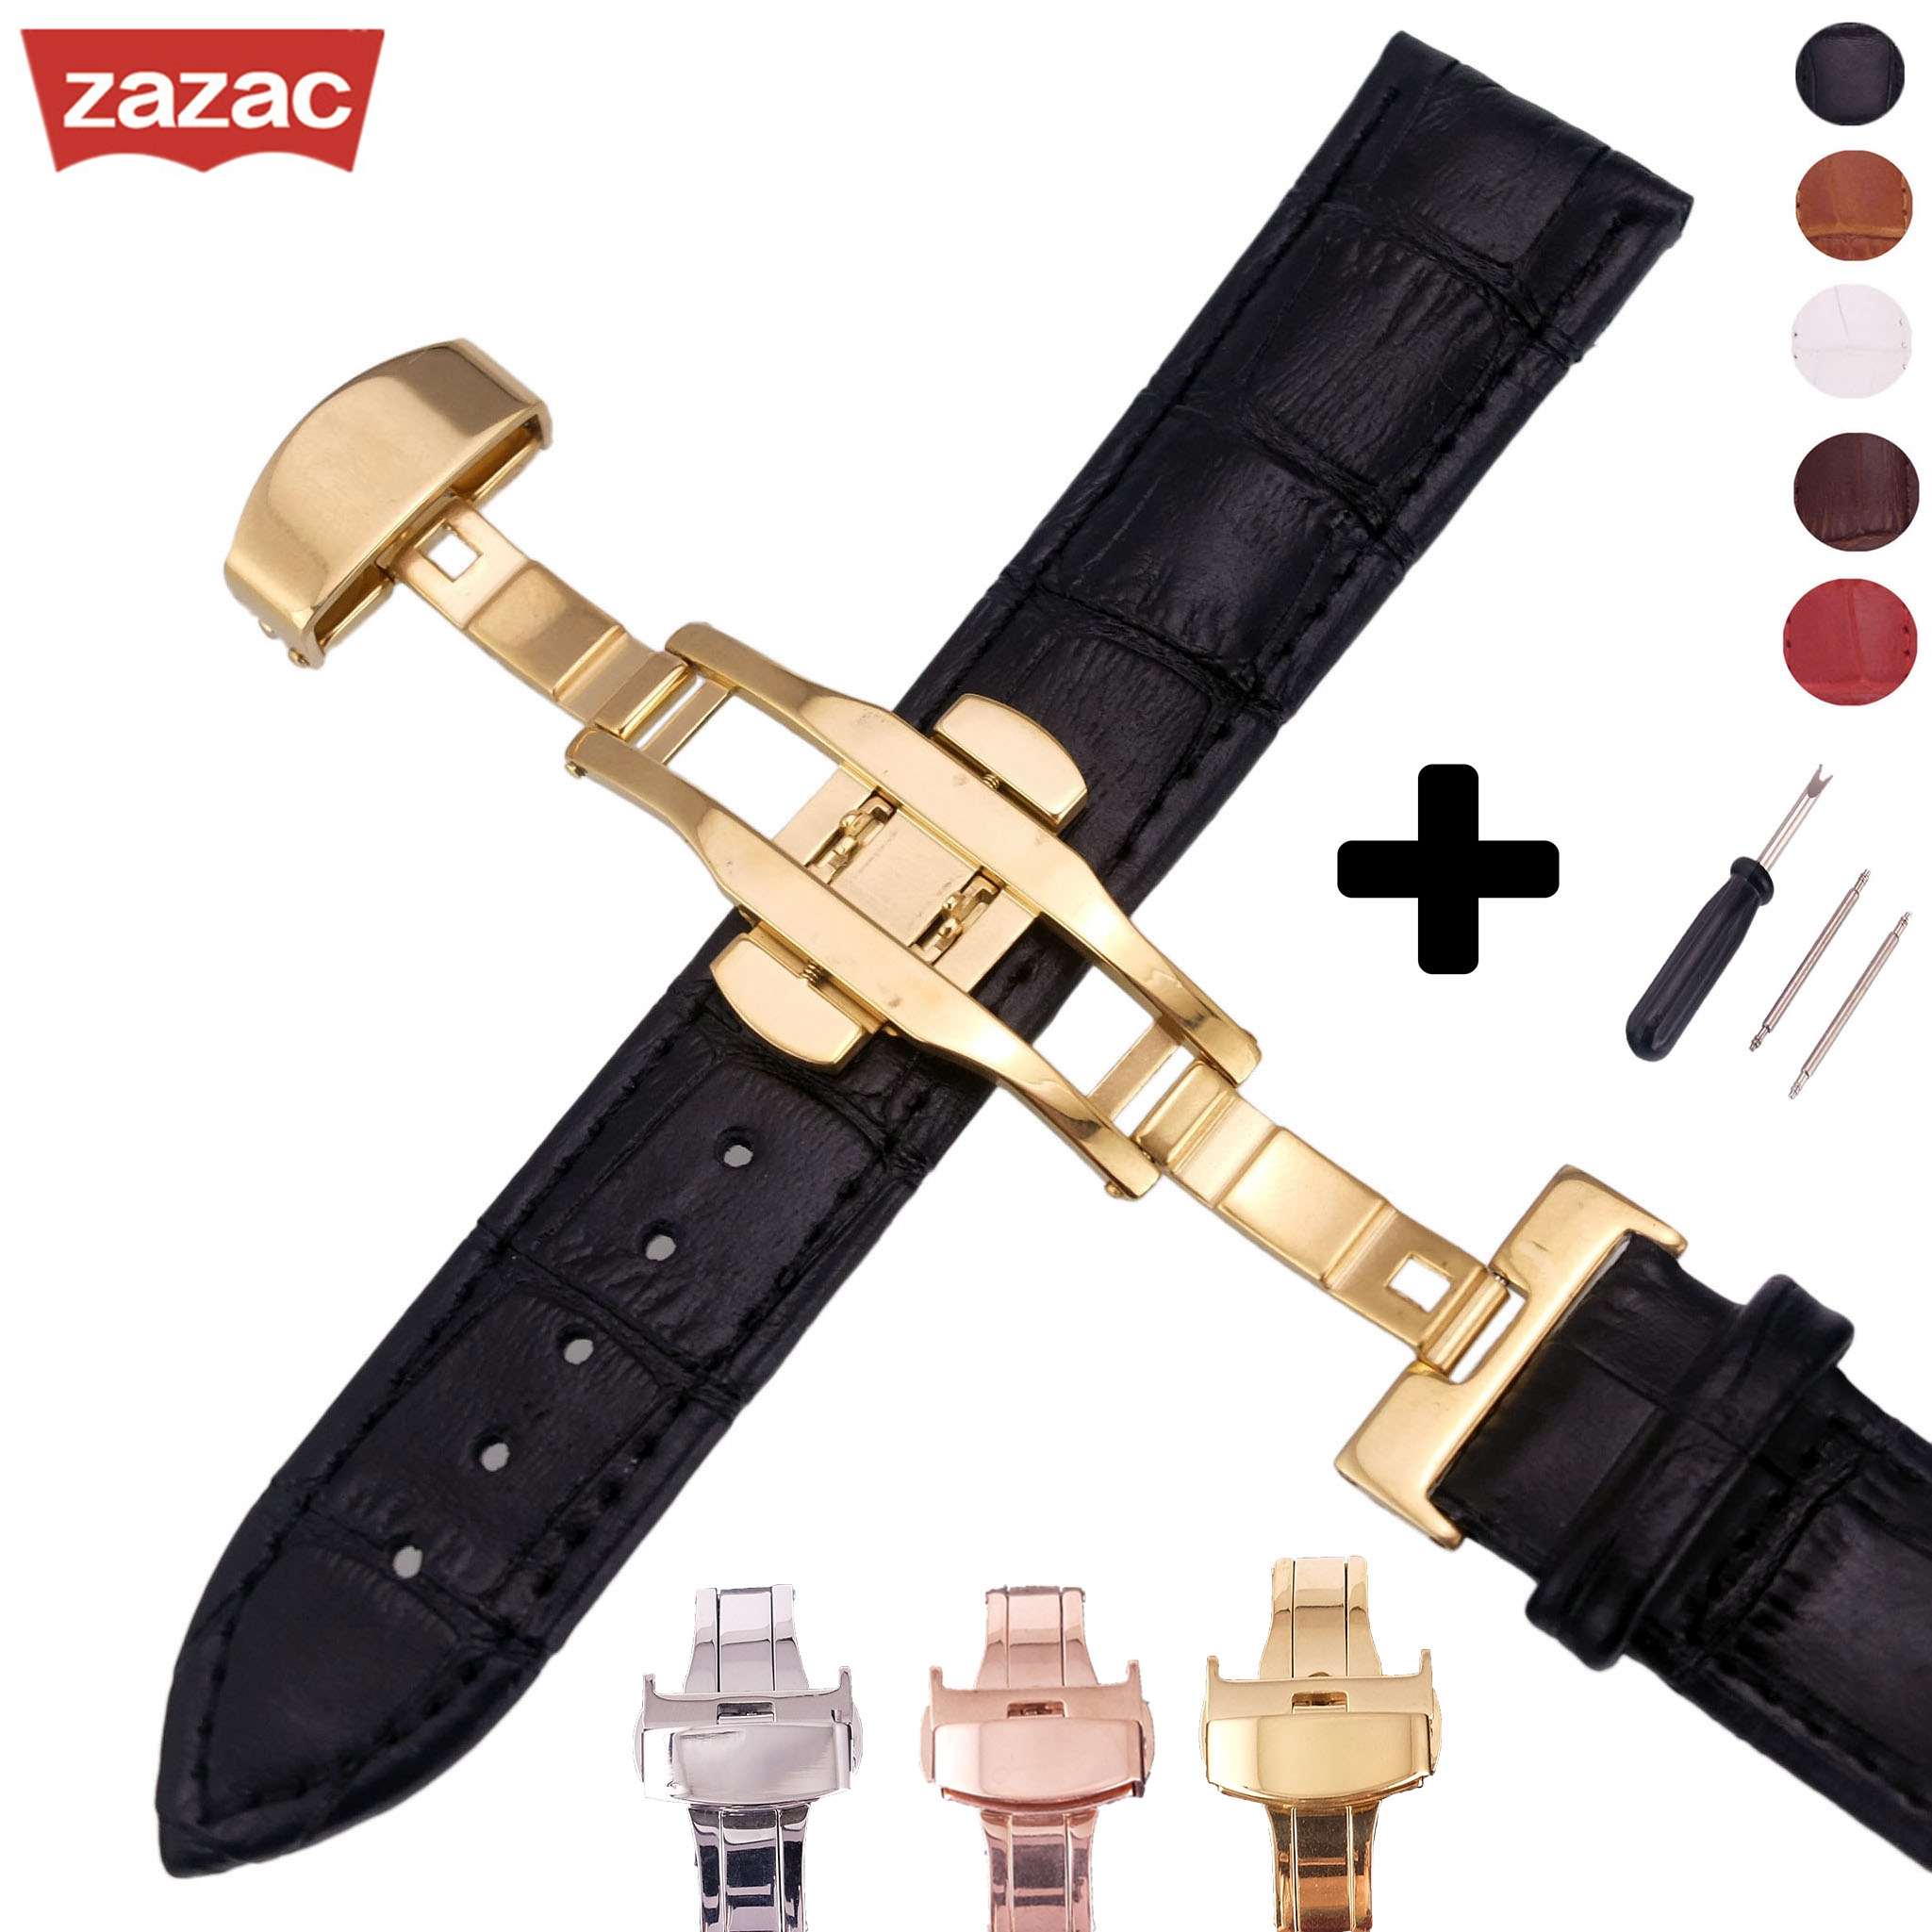 Genuine Leather Watchband Rose Gold Butterfly Buckle Watch Band Croco Grain Bracelet for Watch Strap 14 16 18 19 20 21 22 24mm